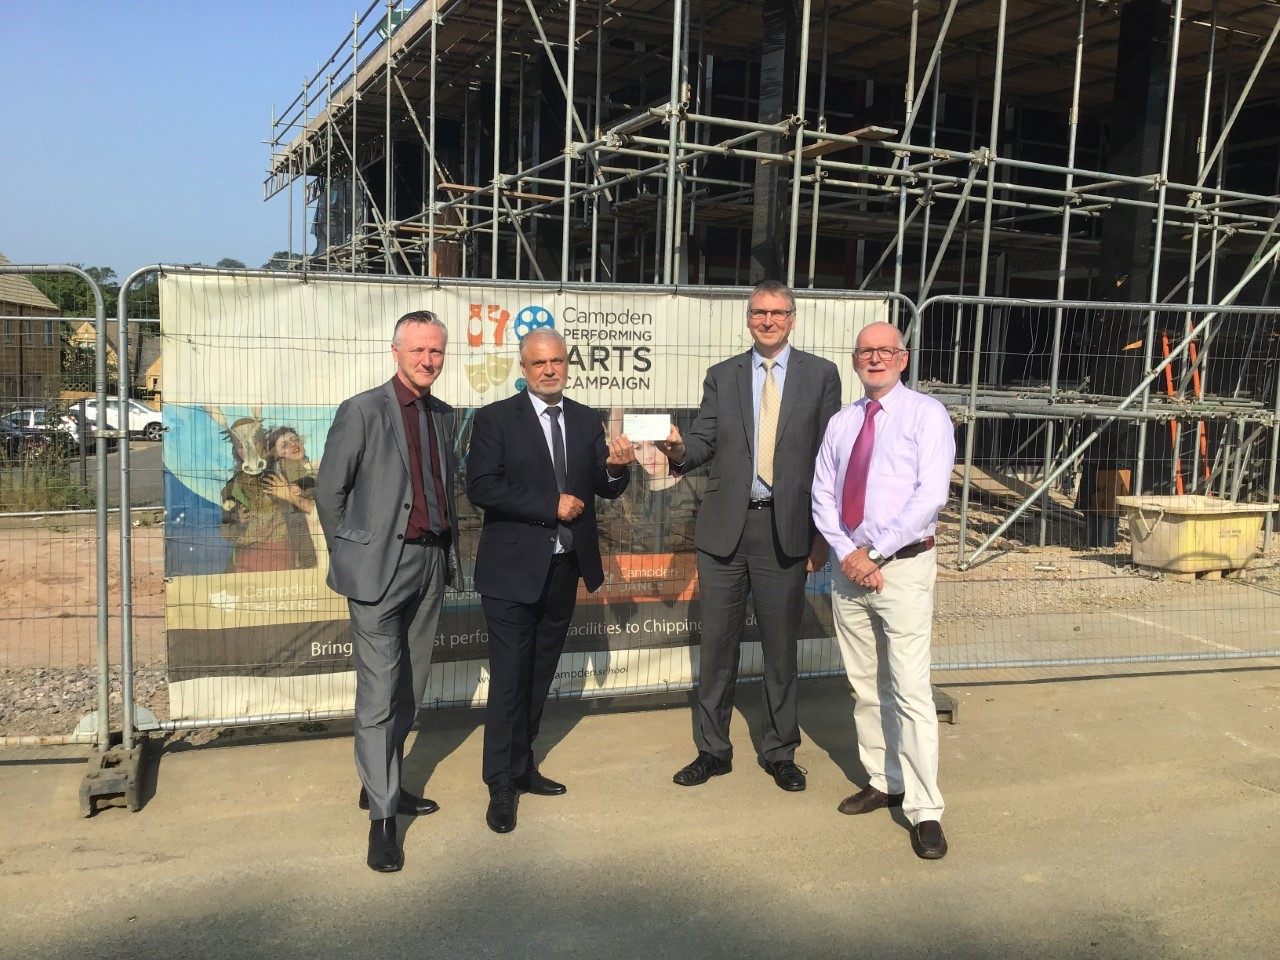 Pictured left to right: Mike Allsop and Steve Malik (who head up the West Midlands region of Duchy Homes), John Sanderson (CCS Principal) and Geoff Price (Housing Association).